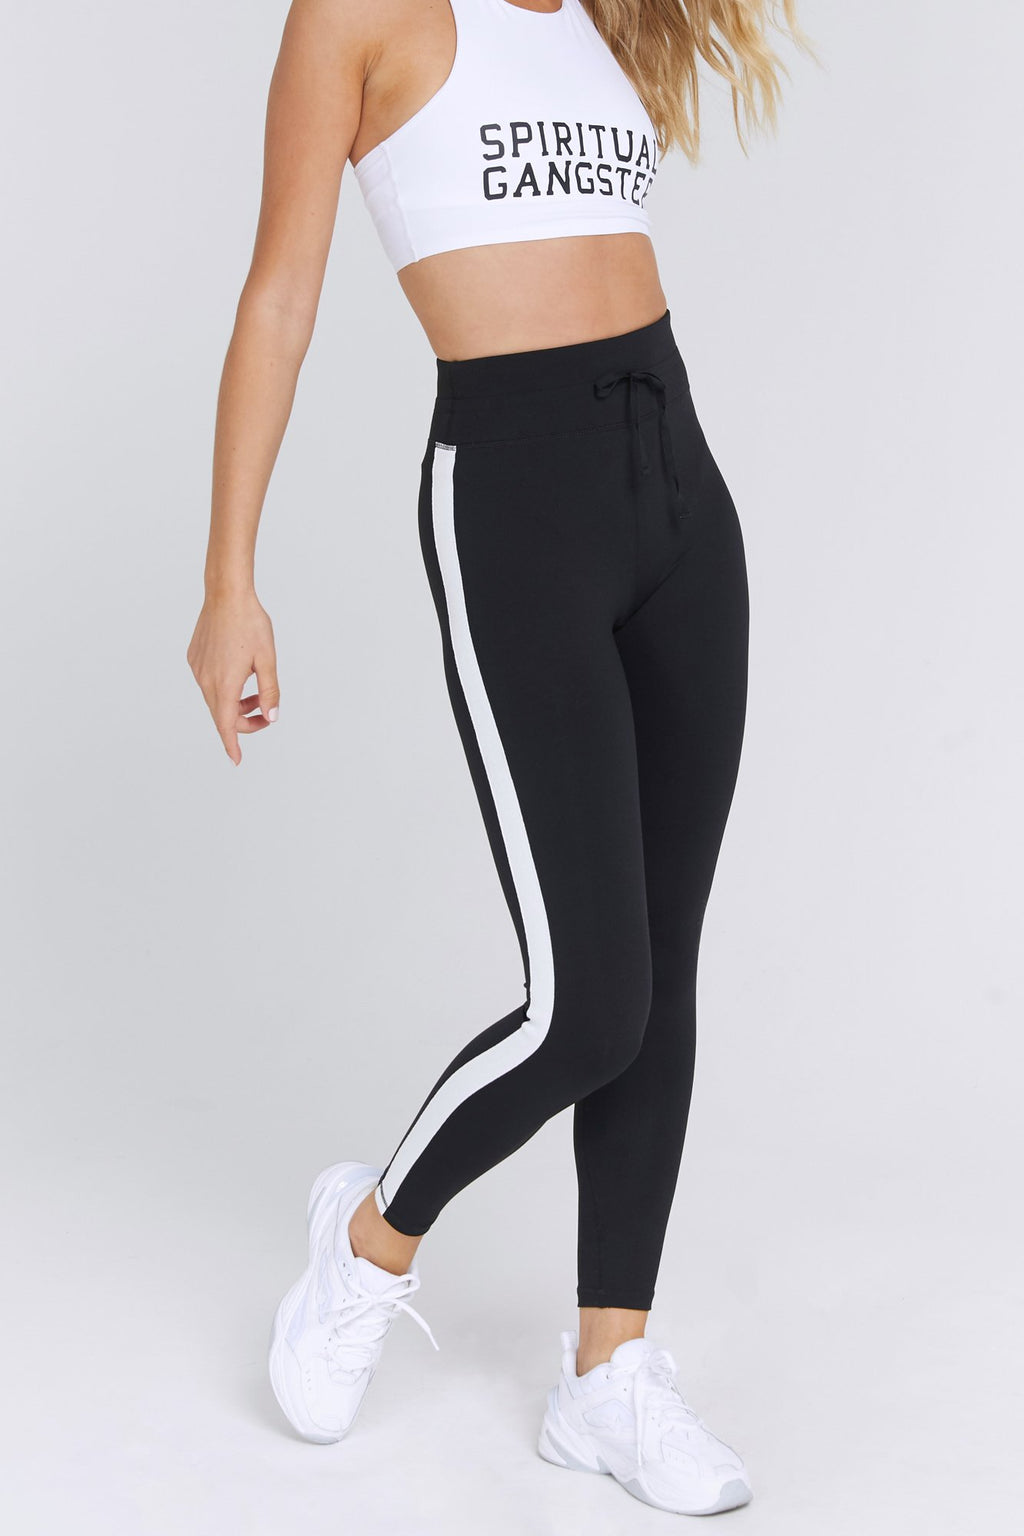 Model wears a pair of high waisted black spiritual gangster leggings. The sporty high waist legging has a vertical white, sparkly stripe down the side of the leg of the pant. It is a full length legging that comes with an exposed drawstring waistband.